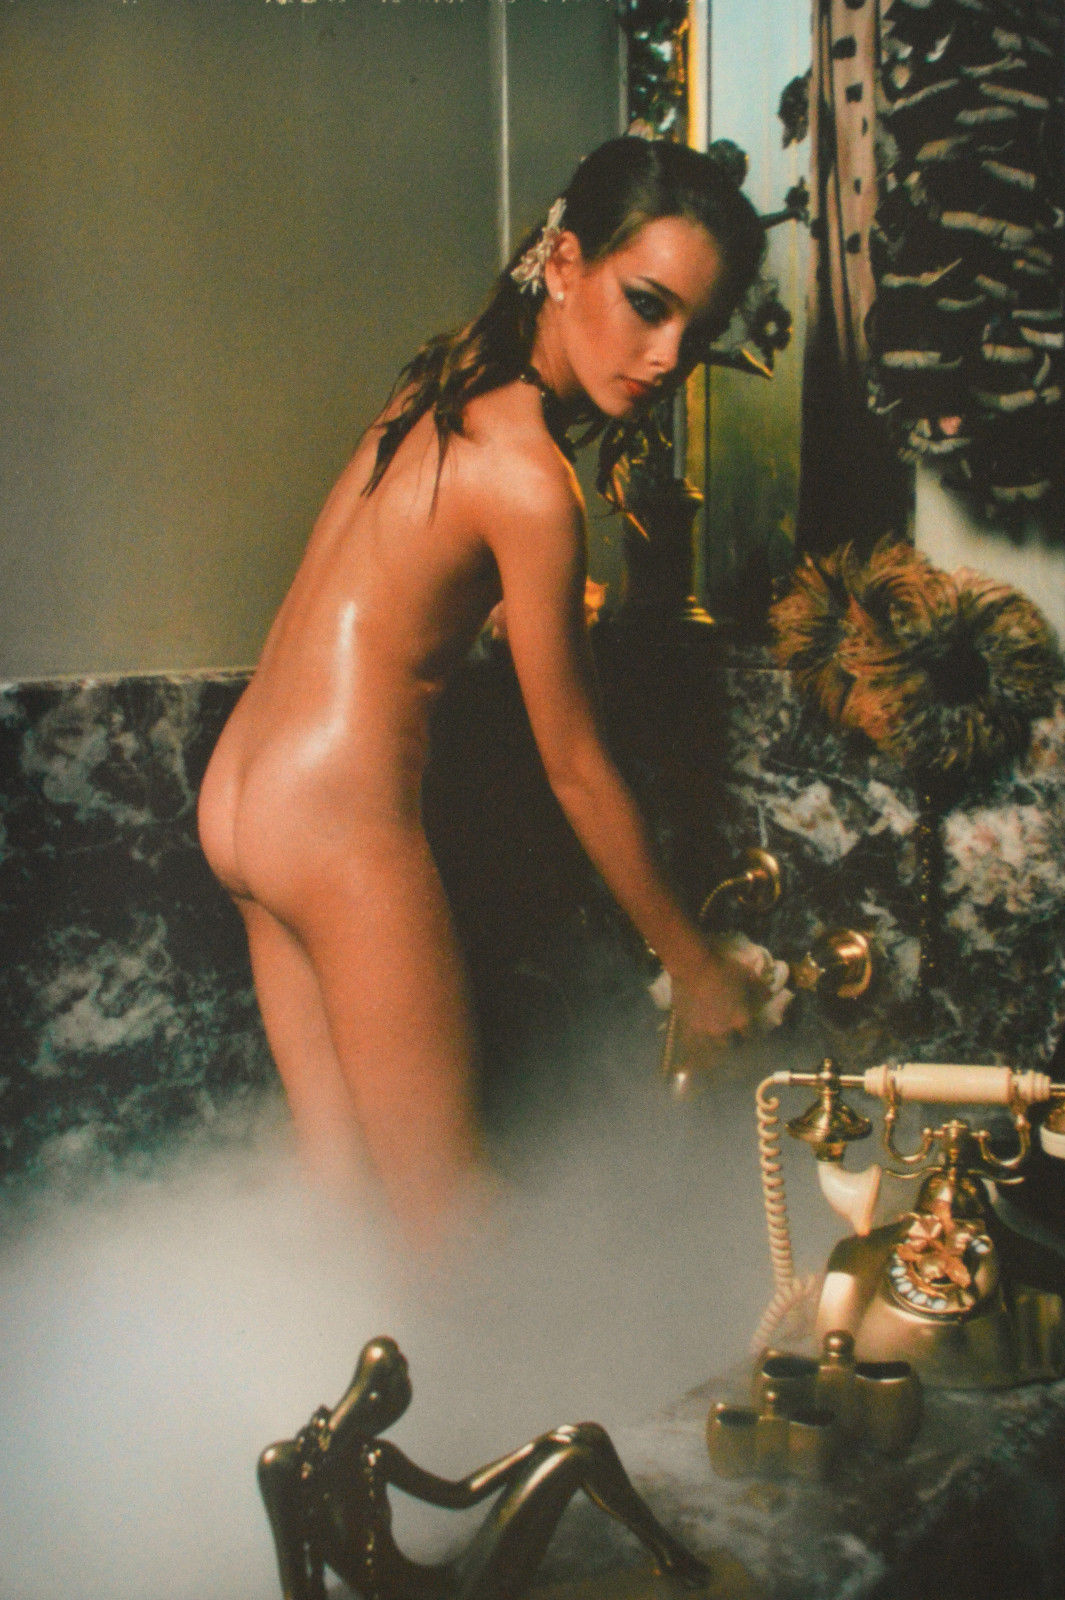 Naked pictures of brooke burns